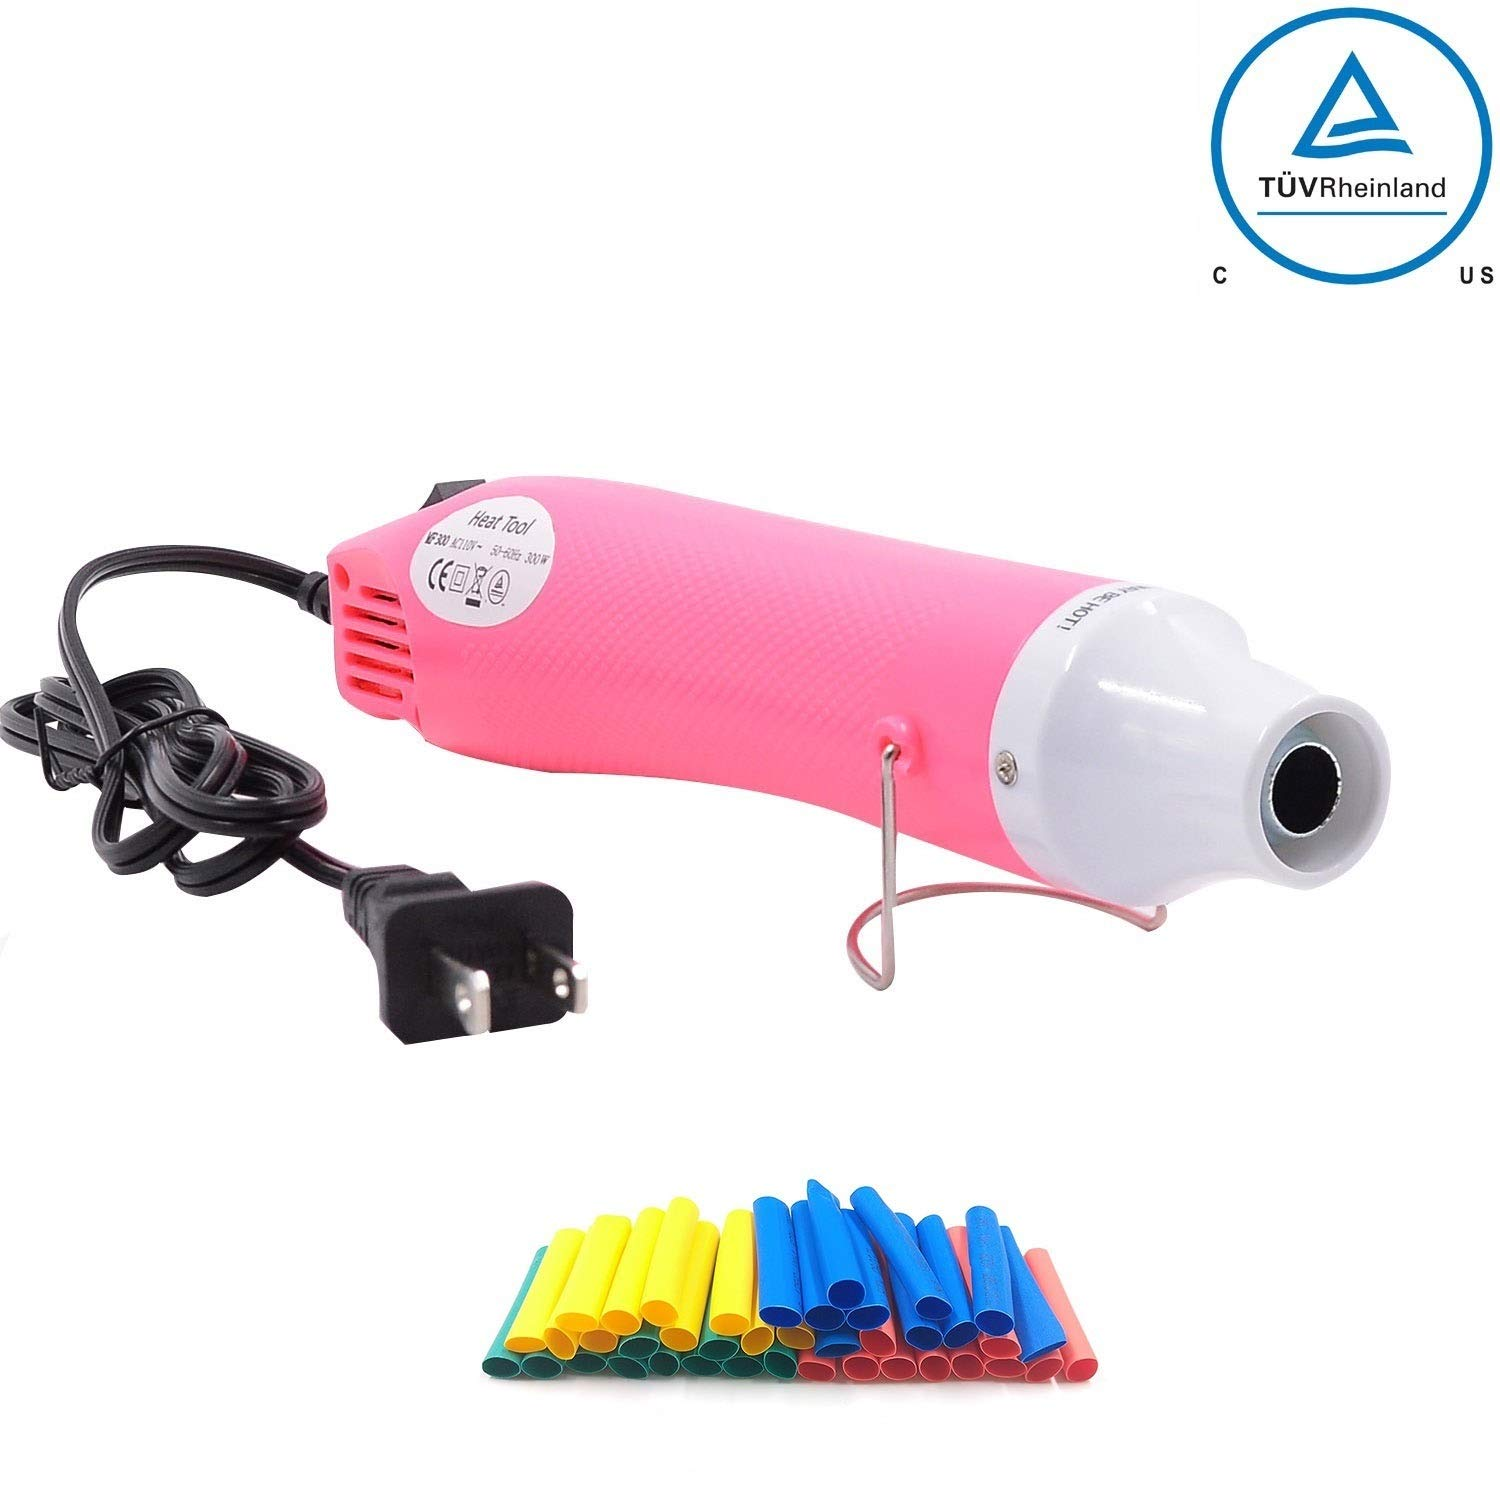 Heat Gun,mofa Hot Air Gun Tools Shrink Gun with Stand For DIY Embossing And Drying Paint Multi-Purpose Electric Heating Nozzle 300W 110V(Pink,White)